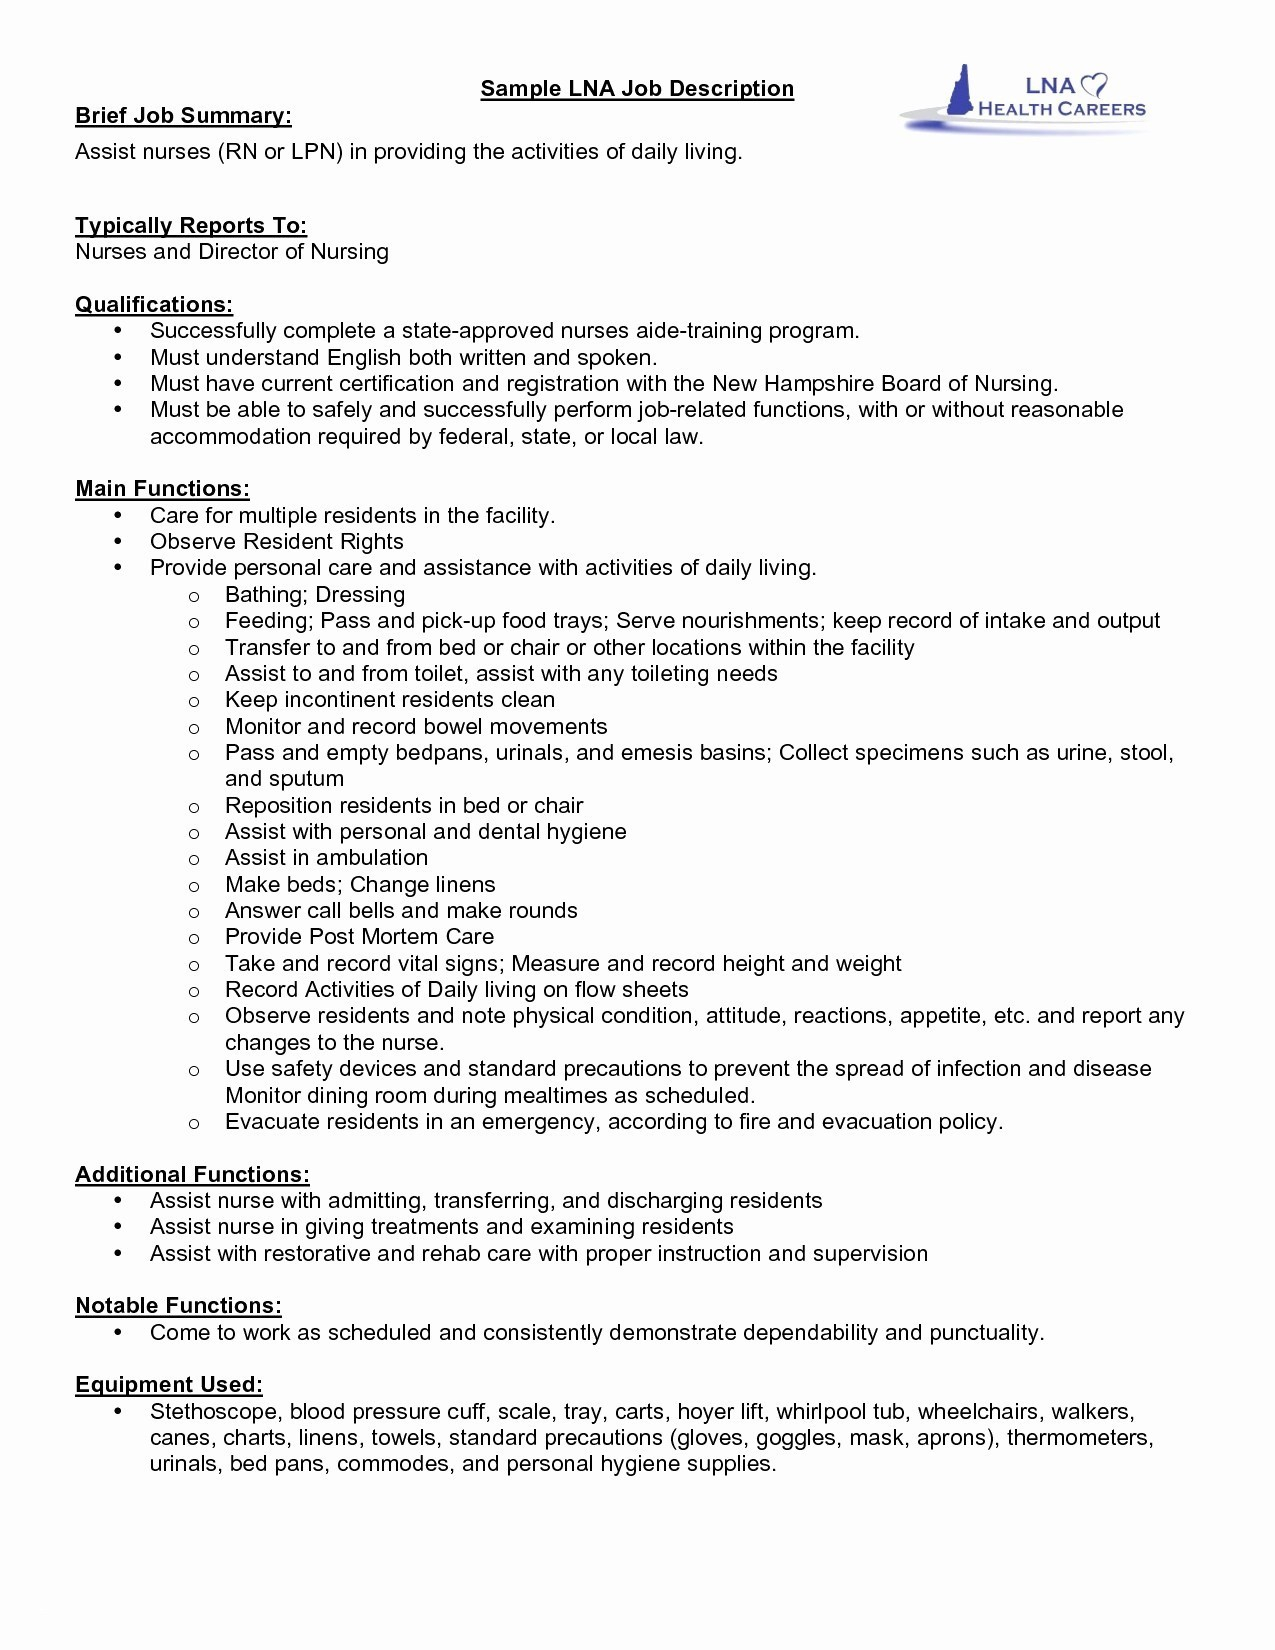 Recent Graduate Resume - New Graduate Resume Unique Best New Nurse Resume Awesome Nurse